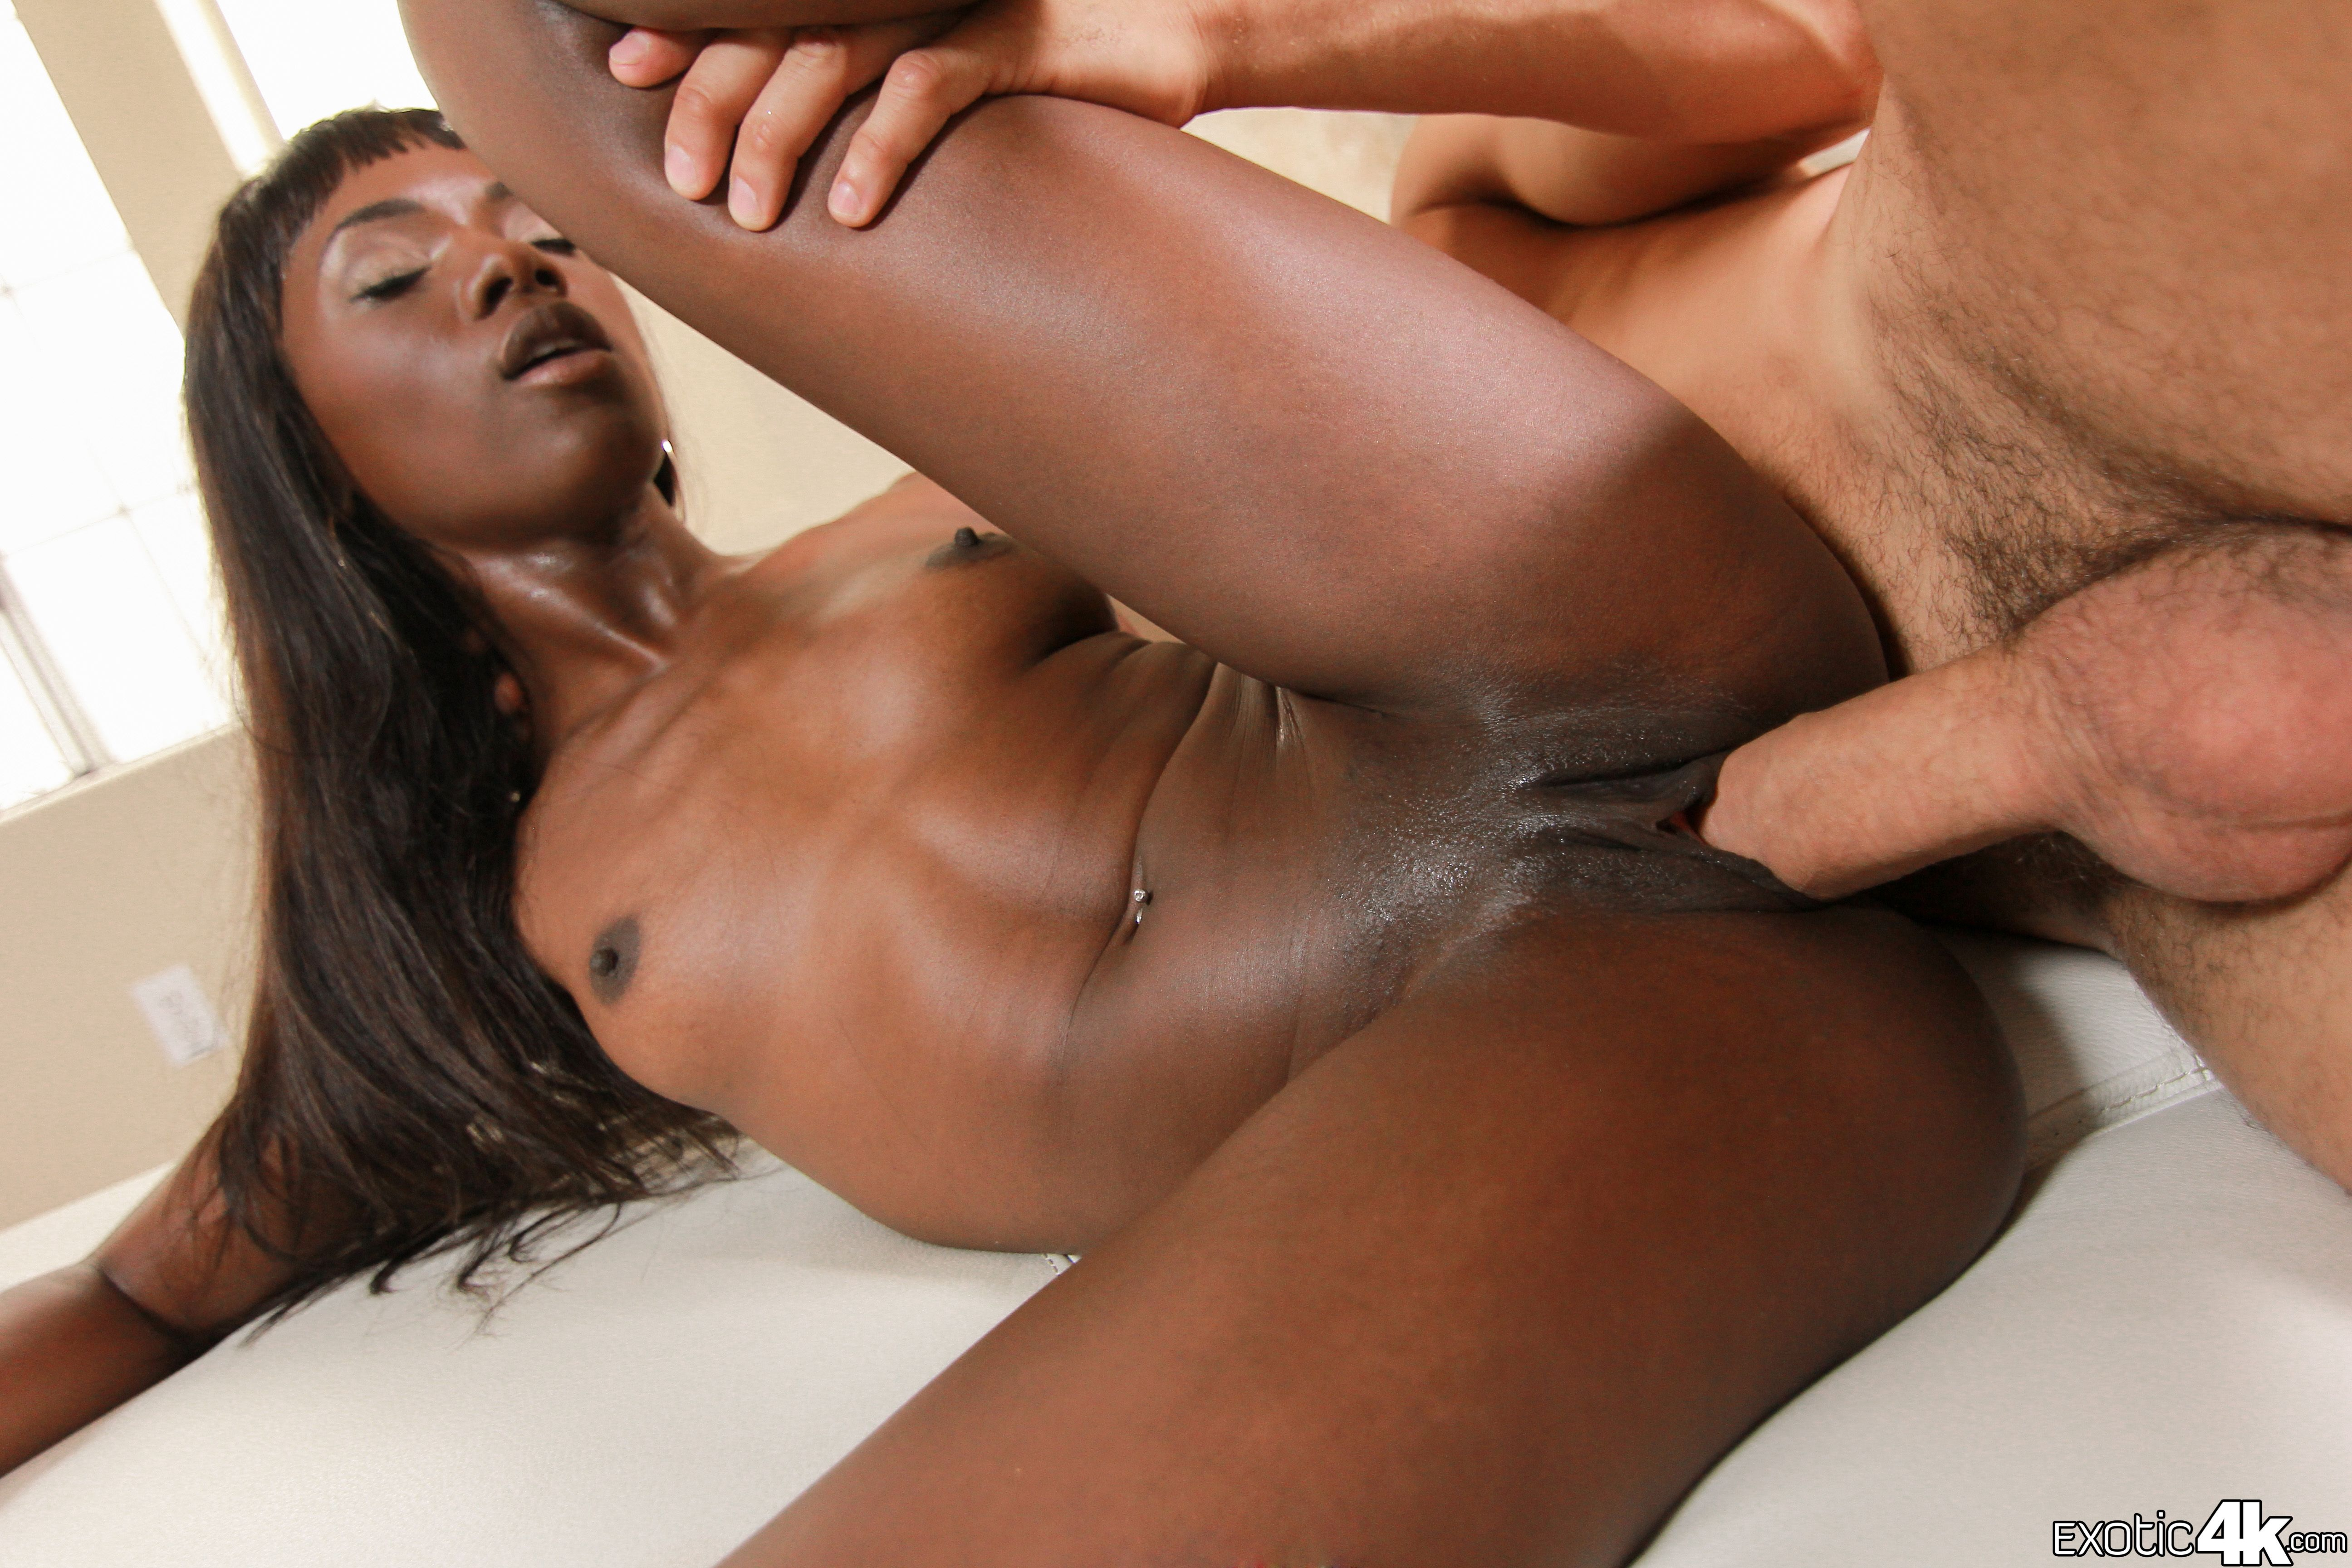 Best black creampies white pussy, horny naked sexy woman